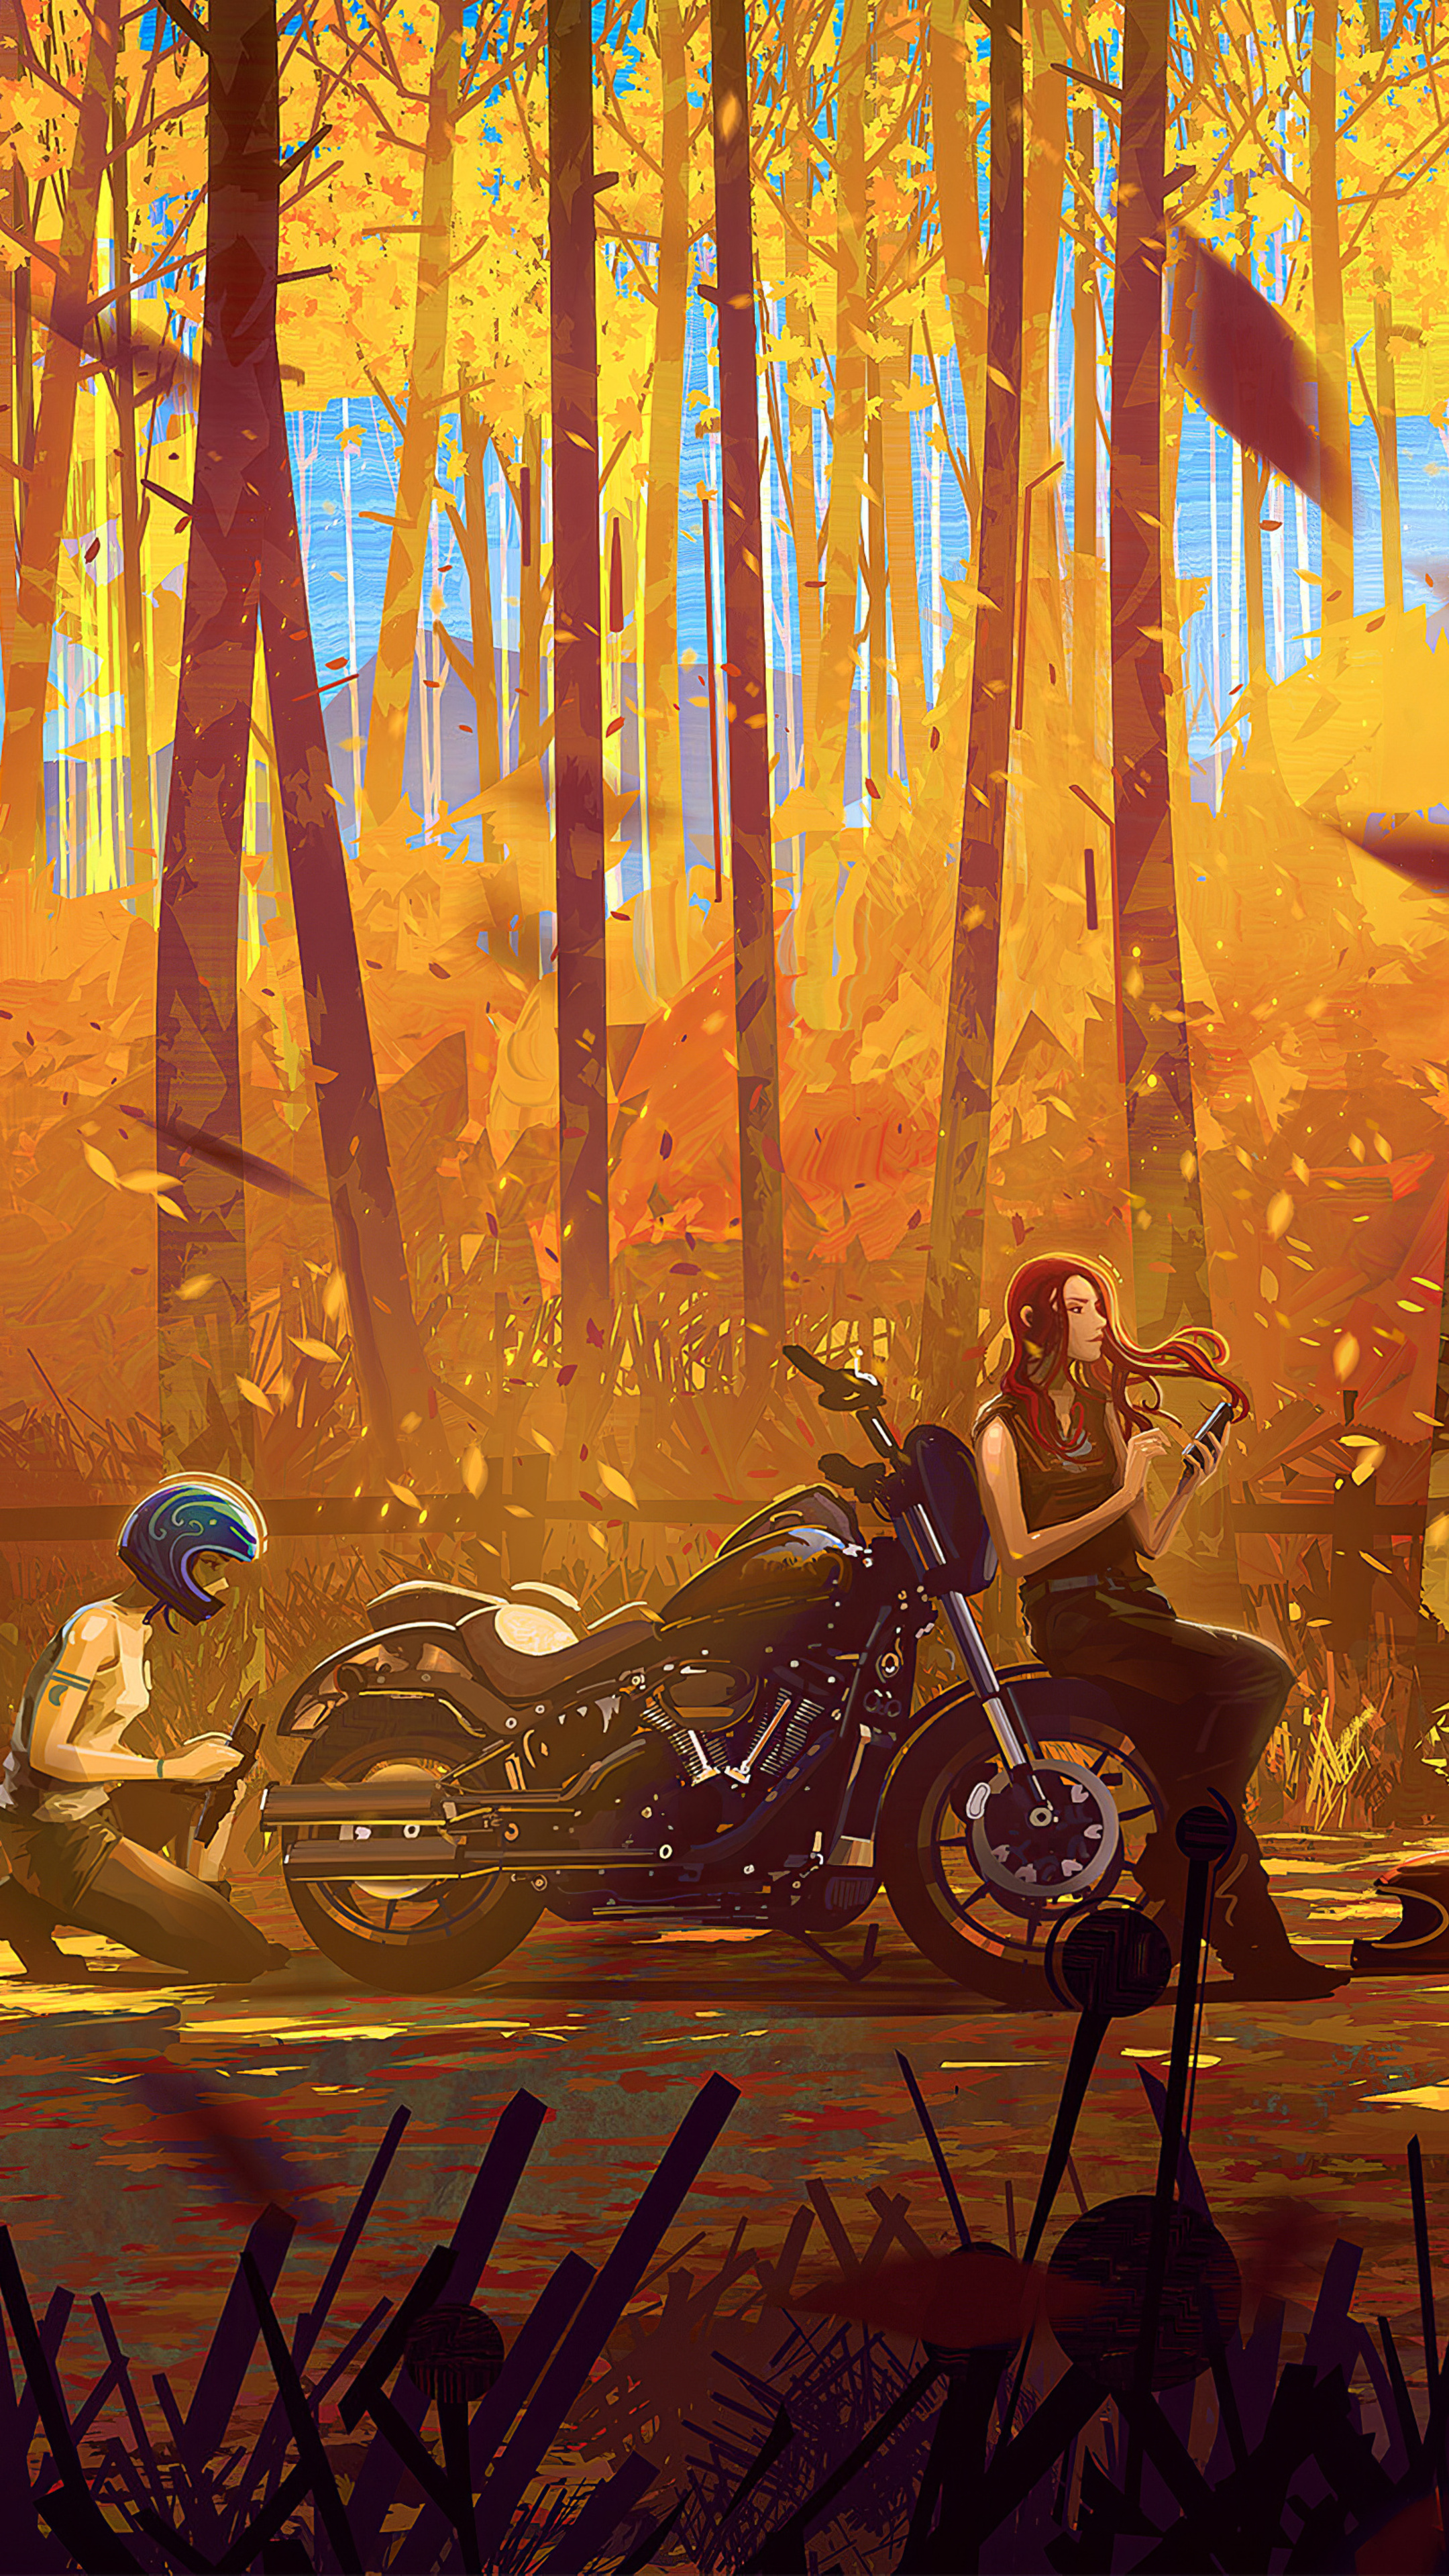 a-beautiful-autumn-biker-breakdown-4k-f3.jpg